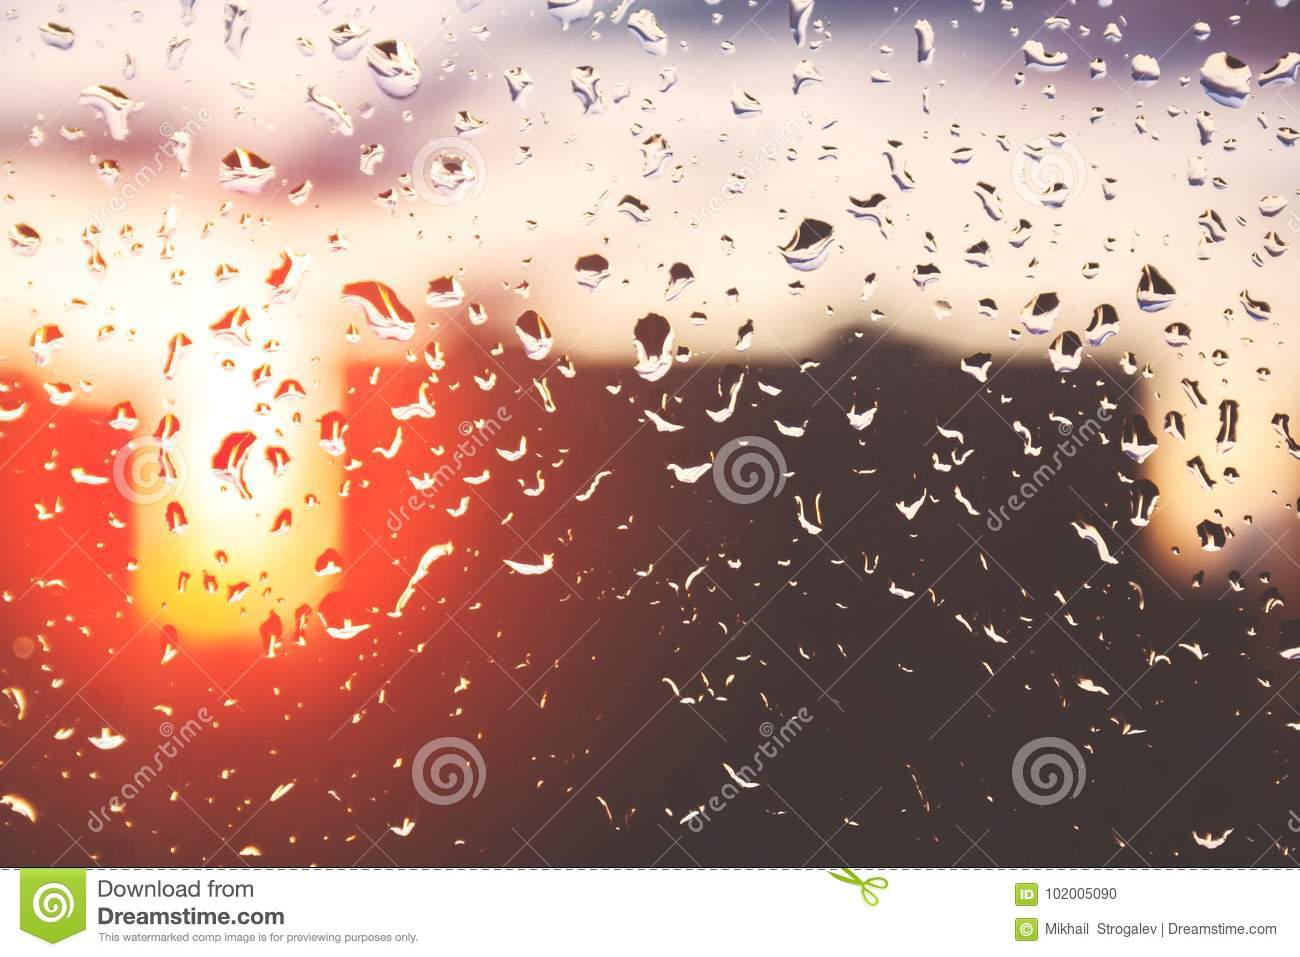 Rain 10x12 FT Backdrop Photographers,Close Up Rain Drops on Glass Natural Sprays Sphere Contrasting Colors Picture Background for Photography Kids Adult Photo Booth Video Shoot Vinyl Studio Props